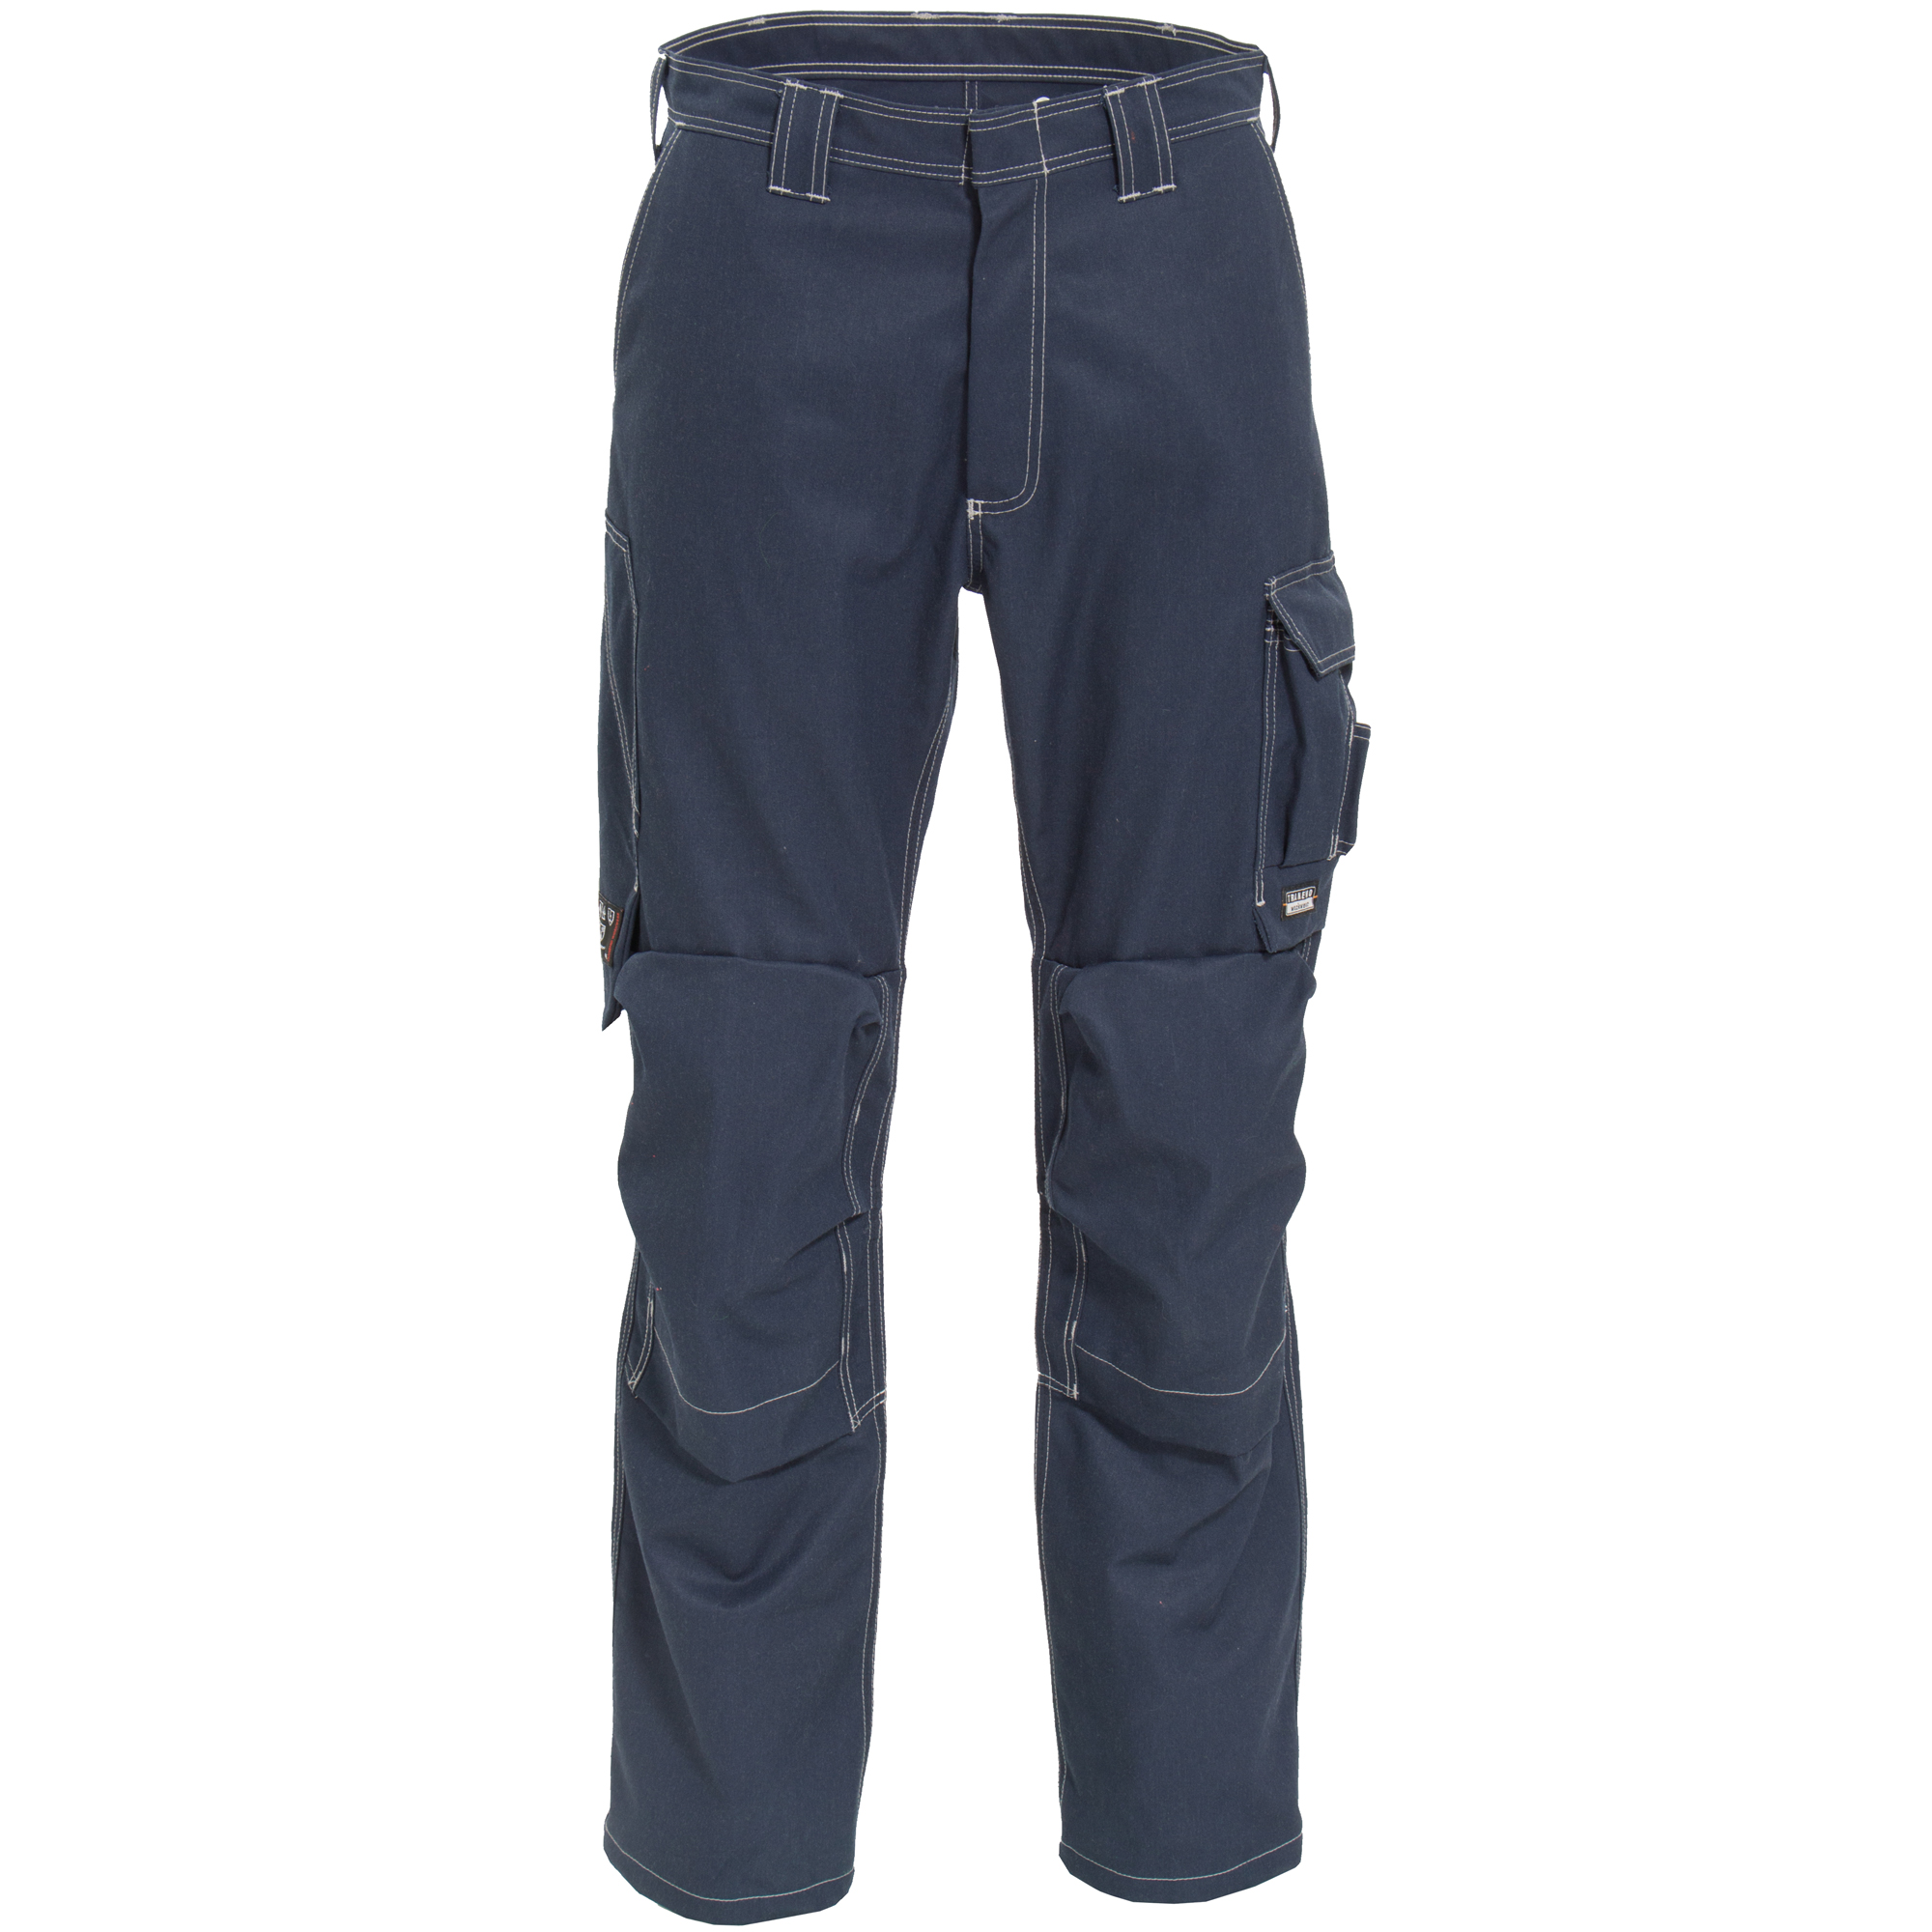 TRANEMO 5451 88 ARC FLASH TROUSERS - 11.9 CAL/CM2